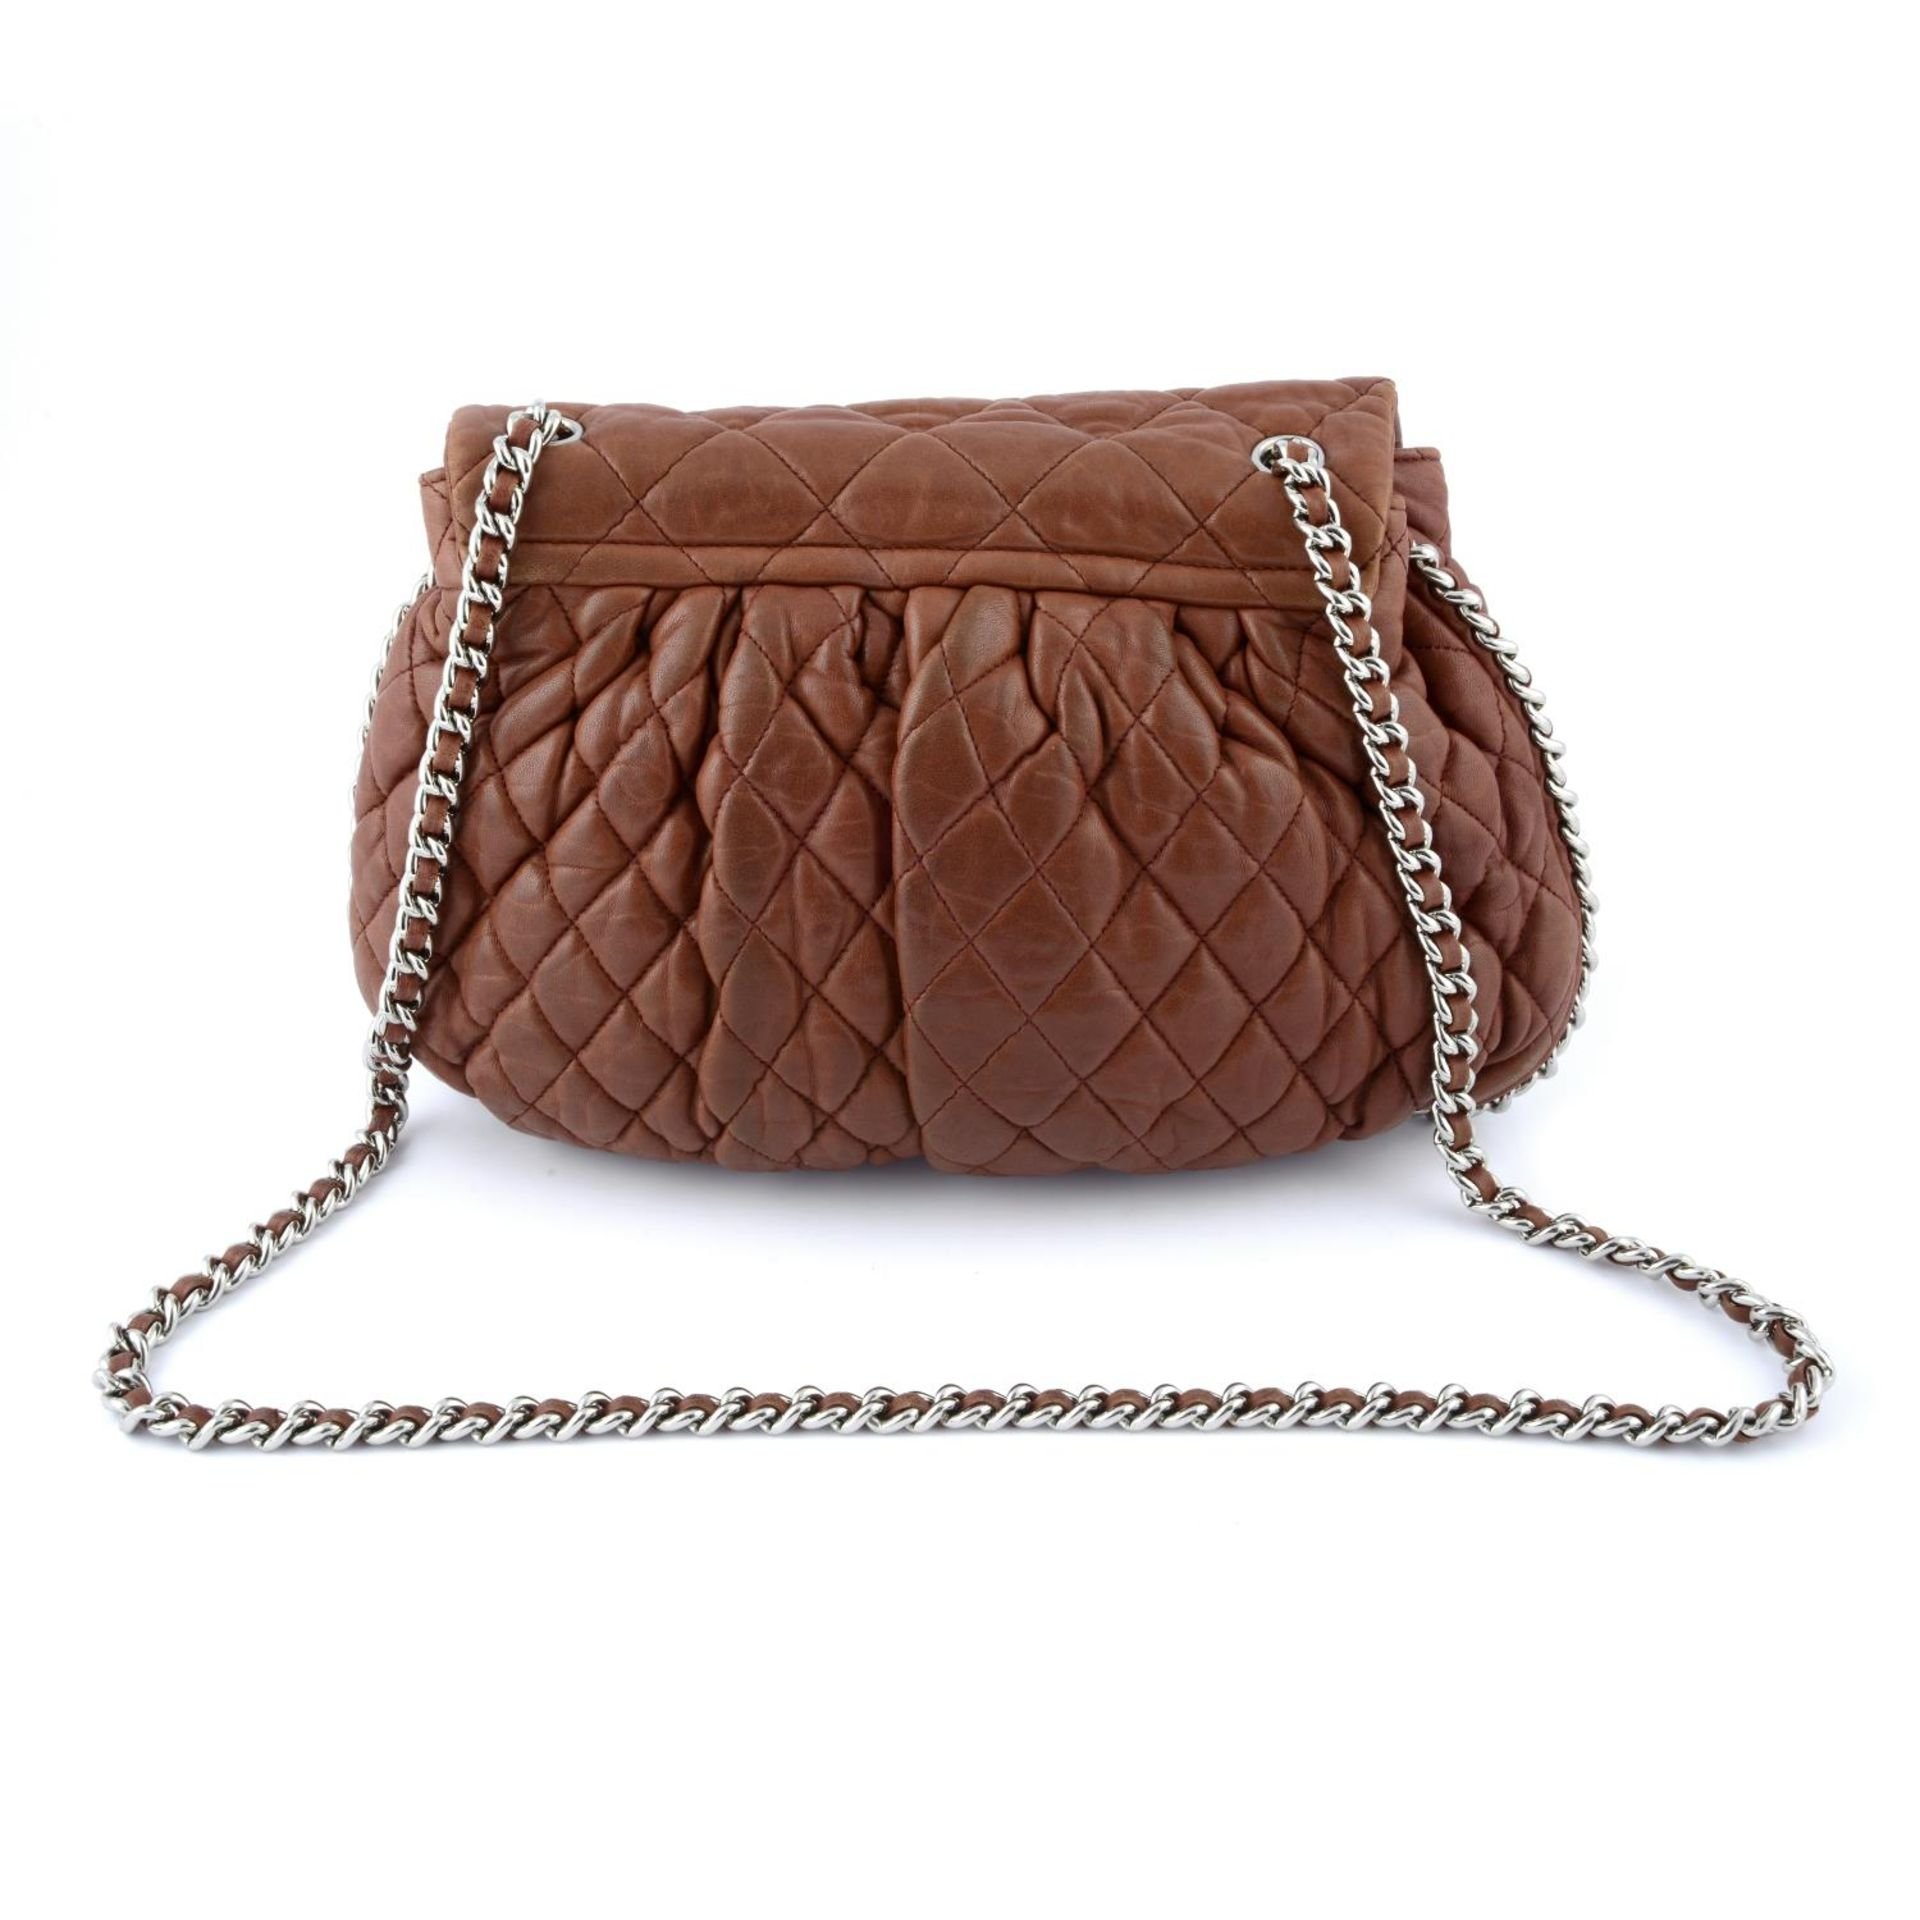 CHANEL - a quilted lambskin leather chain around handbag. - Image 2 of 4